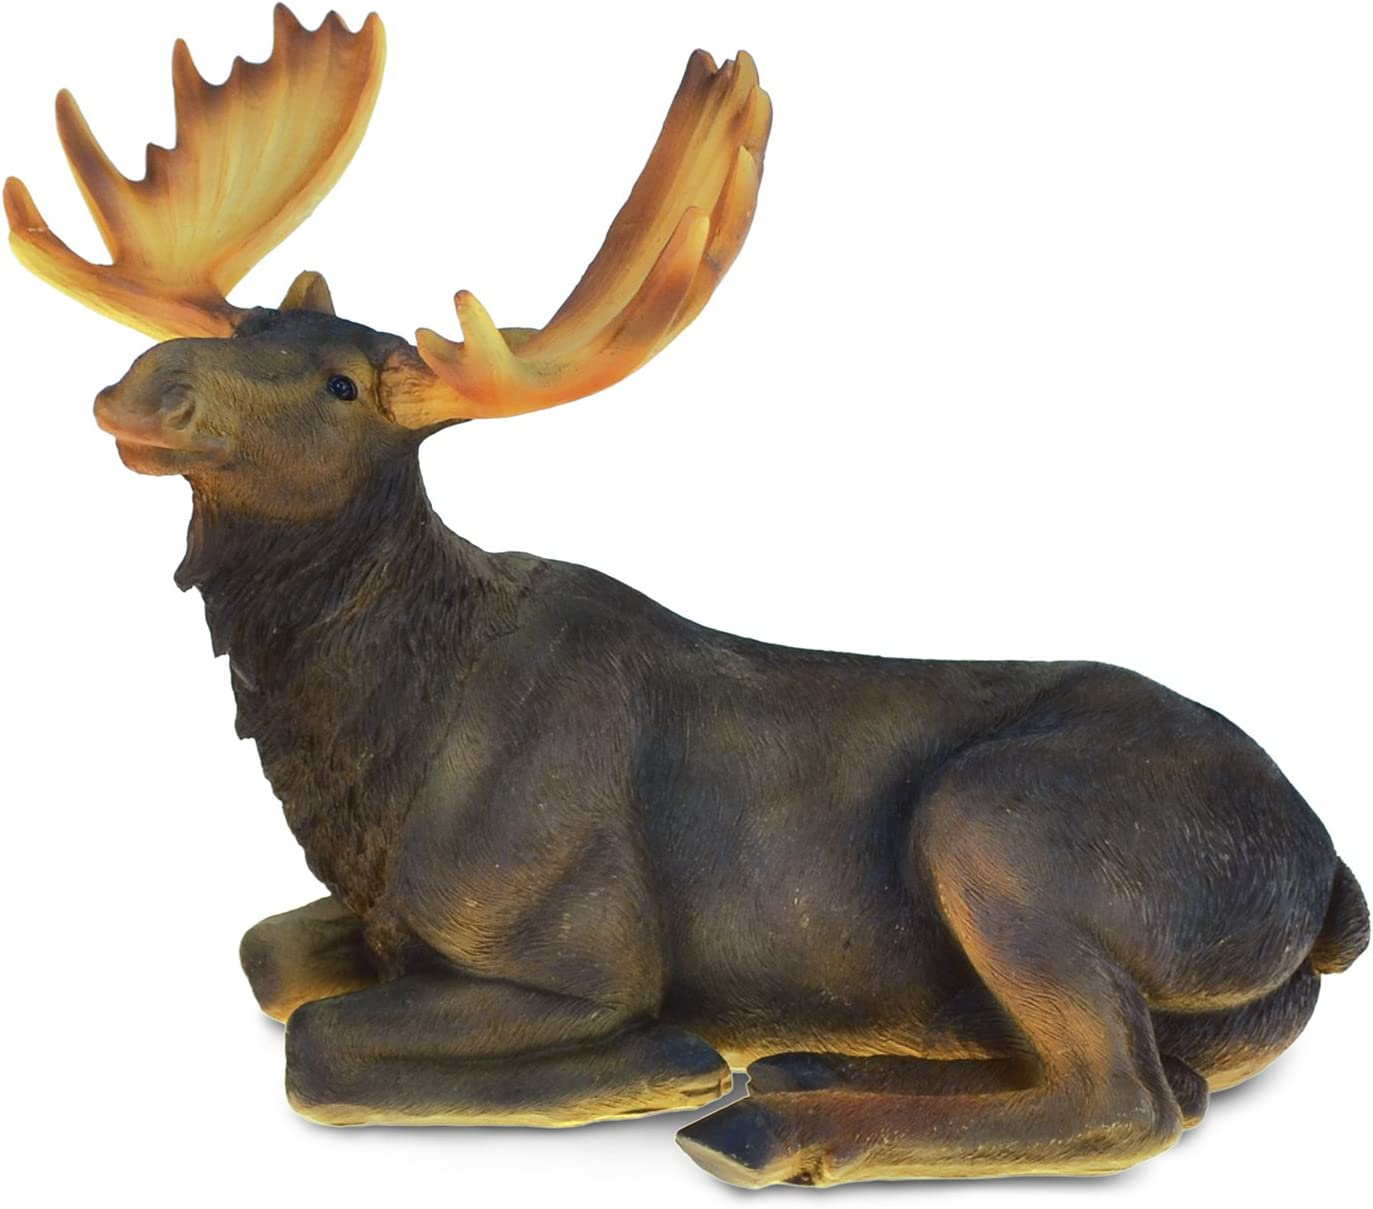 "Puzzled Elegant ""Moose"" Figures The Wild Decor Collection Wildlife Safari Animal Theme Sculpture Resin Handcrafted Figurine Unique Home Accent Kitchen Bedroom Living Room Gift Souvenir 6 Inch"